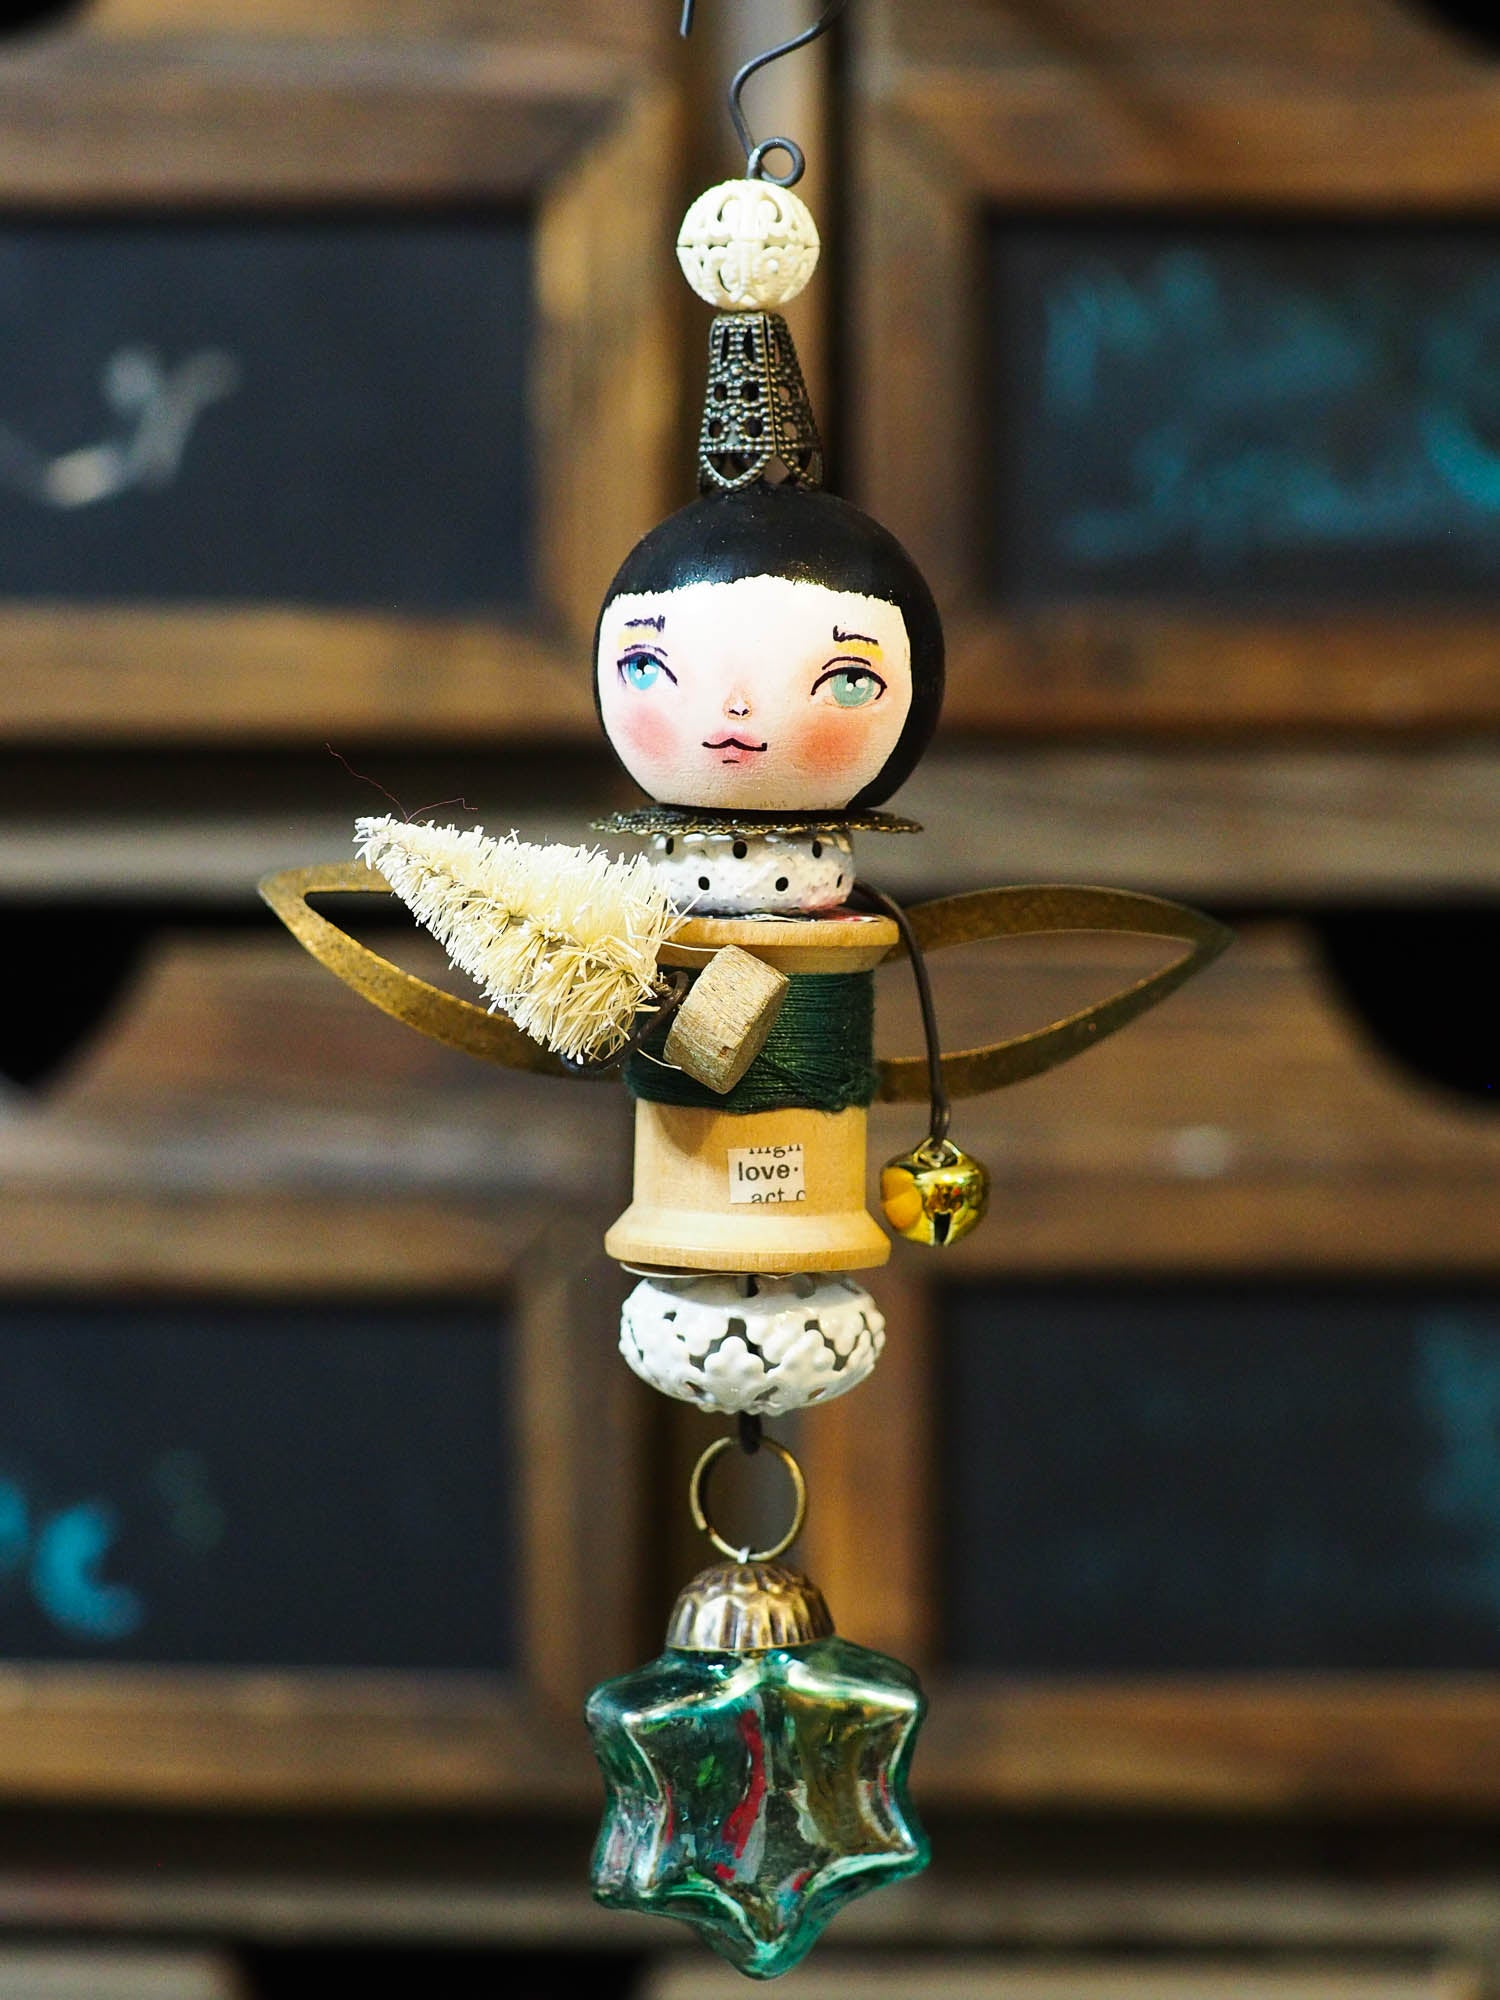 ANGEL No. 4 - An original handmade Christmas tree ornament by Danita, Original Art by Danita Art